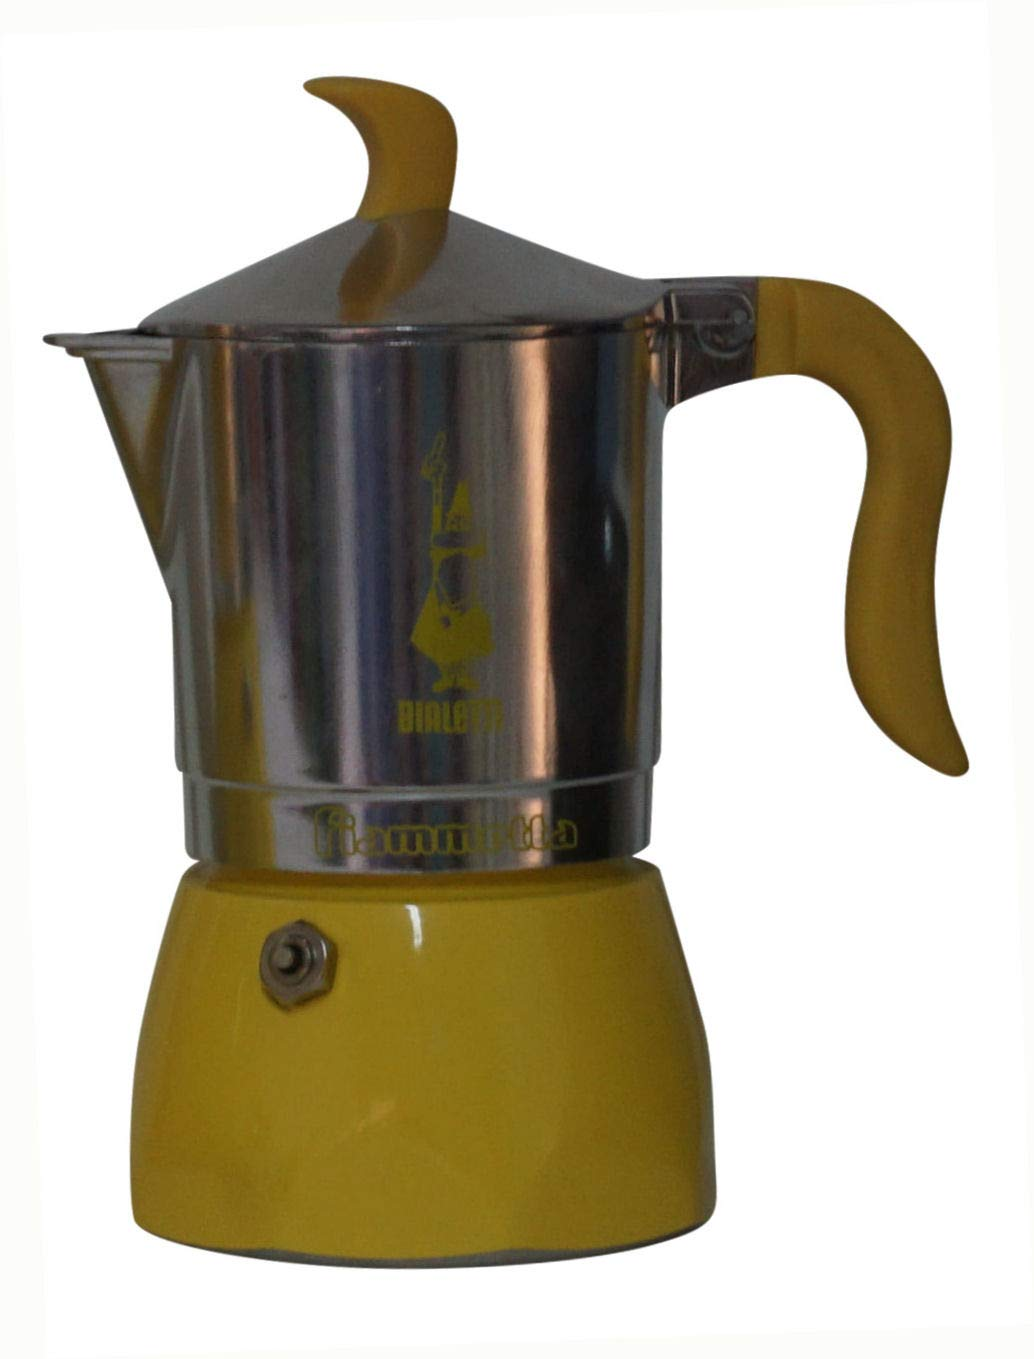 Bialetti:''Fiammetta'' Colours 3-Cups Yellow, New Ergonomic Shape for Handle and Knob [ Italian Import ]